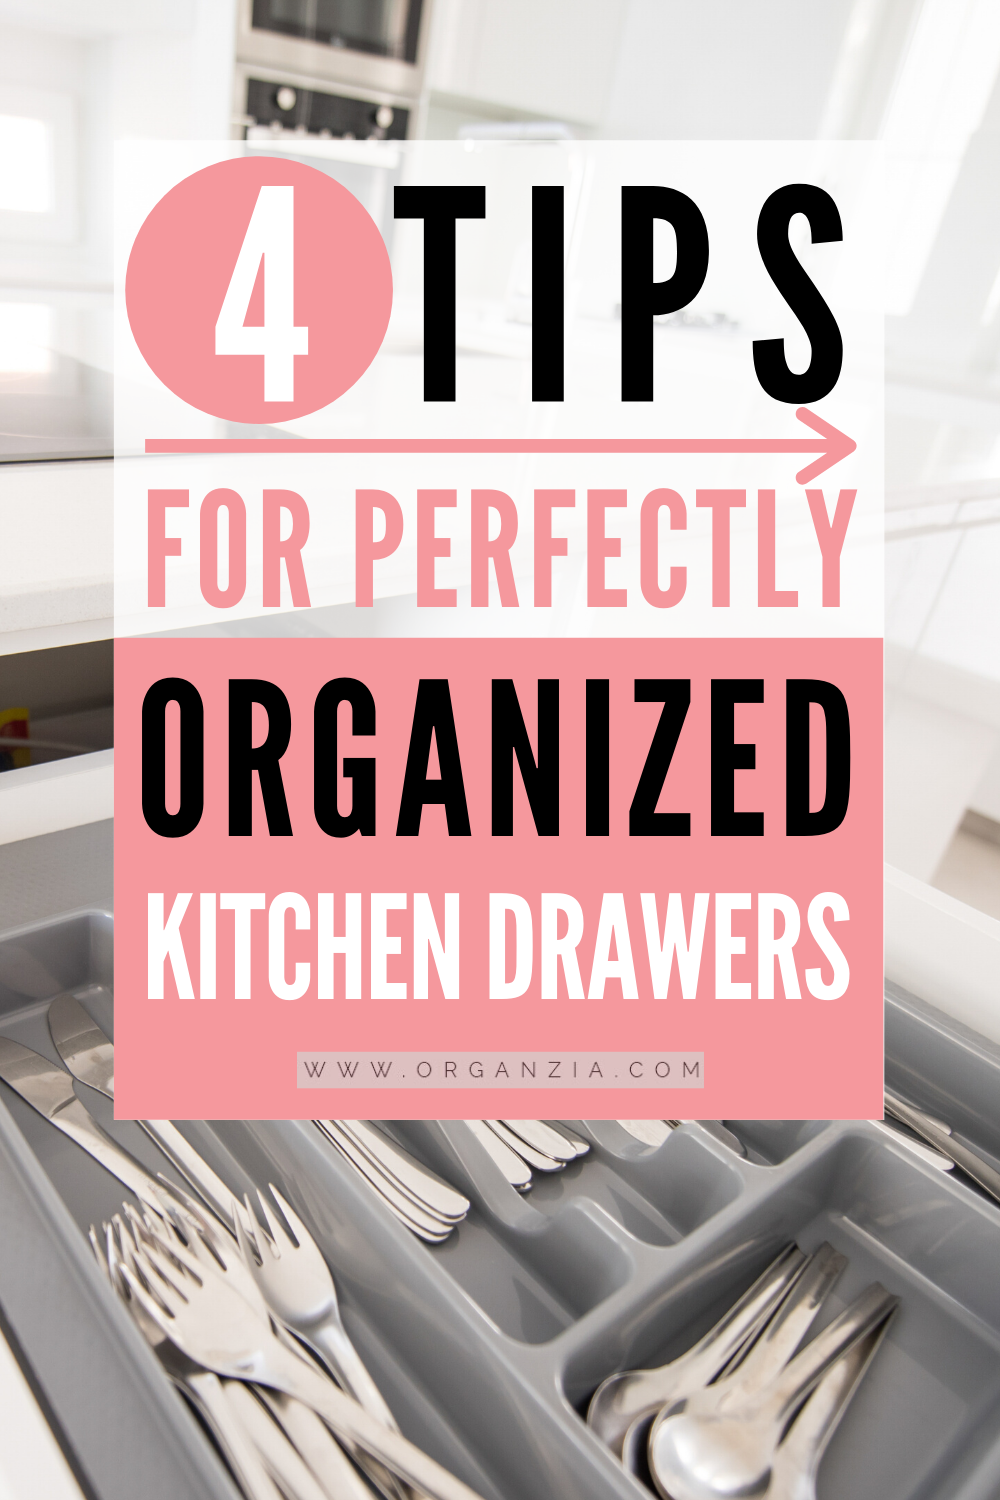 How To Organize Kitchen Drawers Instead Of Cabinets Organzia In 2020 Kitchen Drawer Organization Kitchen Organization Kitchen Drawers